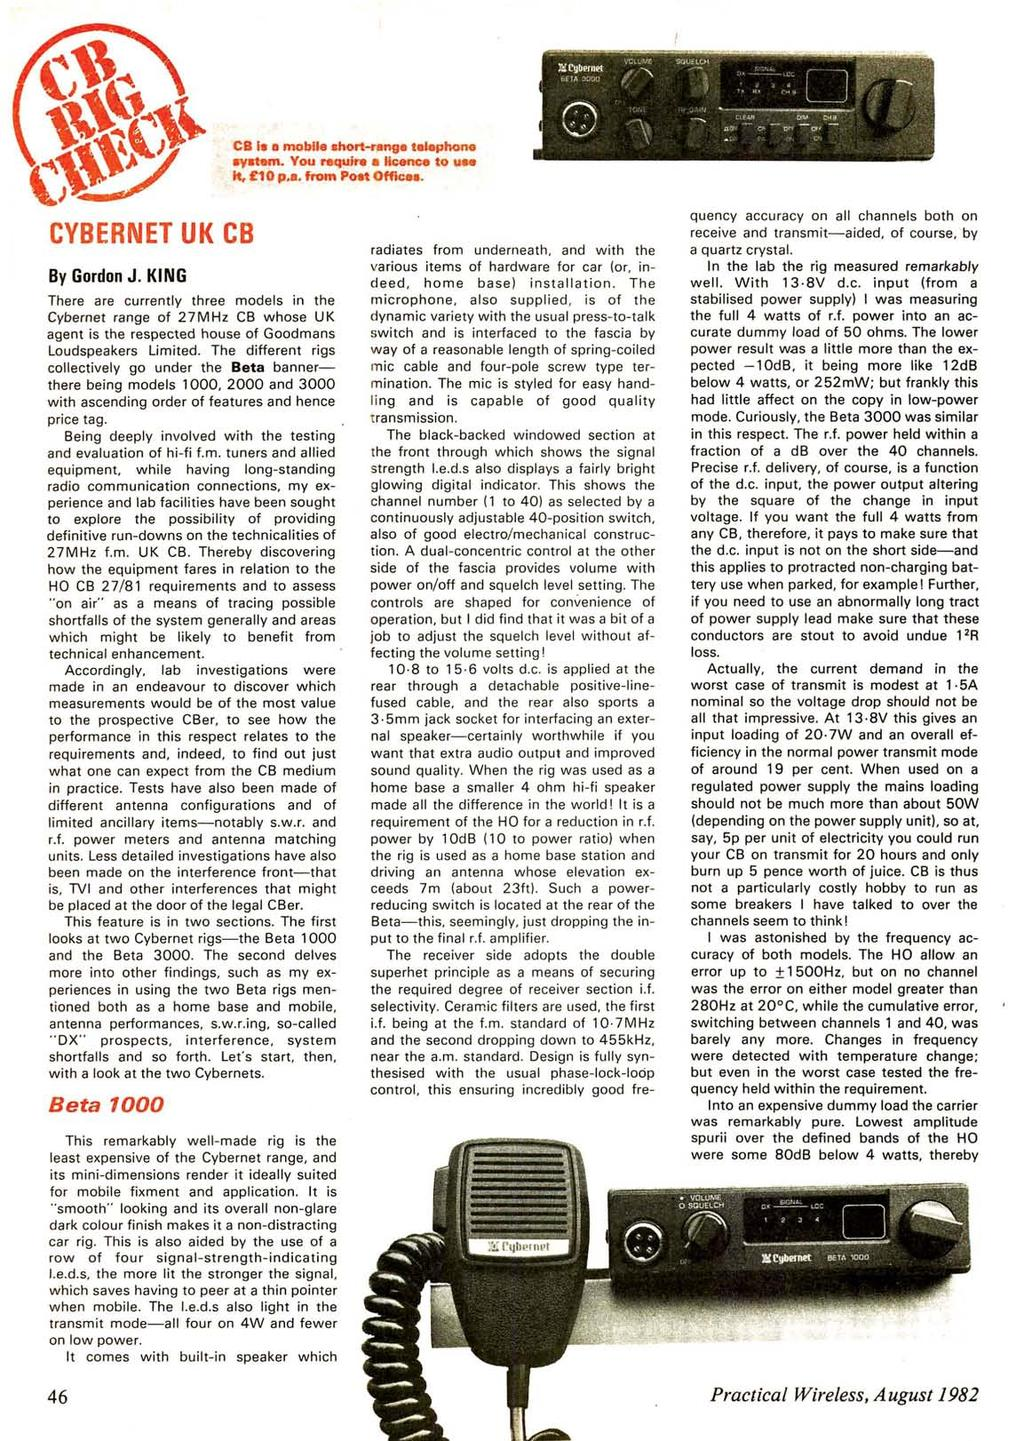 www.americanradiohistory.com CB la 11 mobile ahort-range telephone ayatem. You require alic:ence to... e t. 10 p.a. from Poet Offices. CYBERNET UK CB By Gordon J.